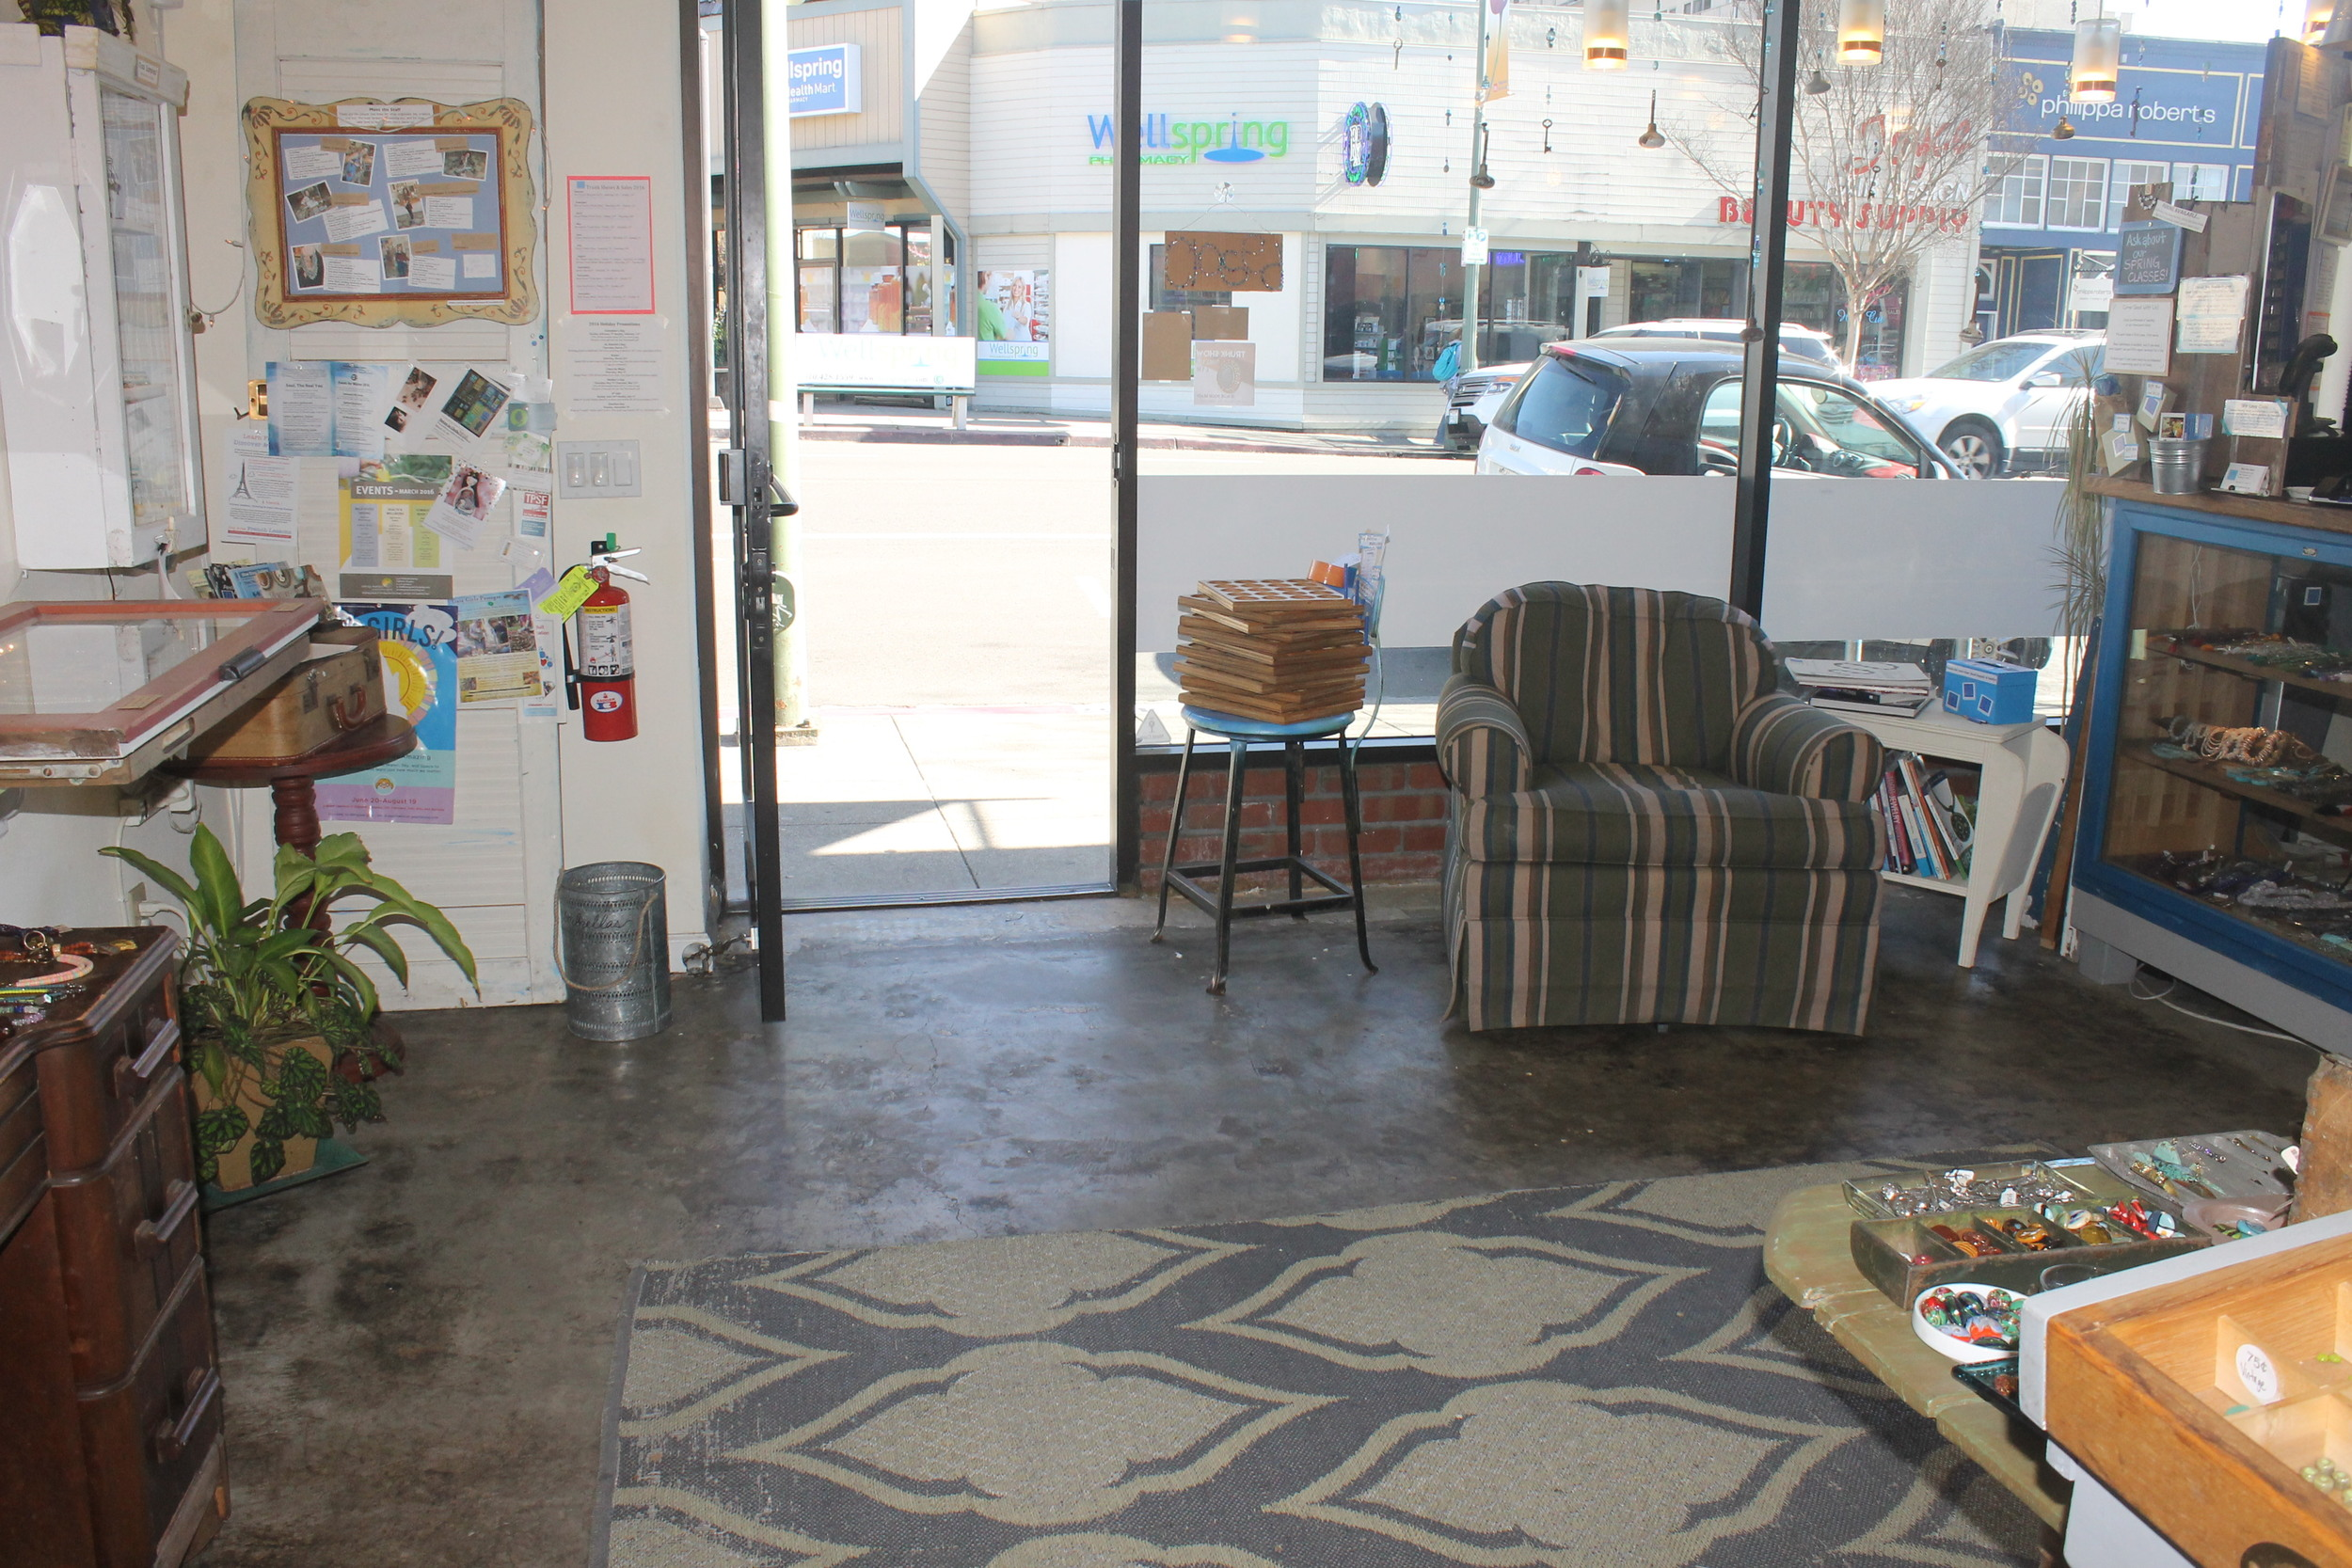 Blue Door Beads' unobstructed entrance creates an inviting space for customers to enter